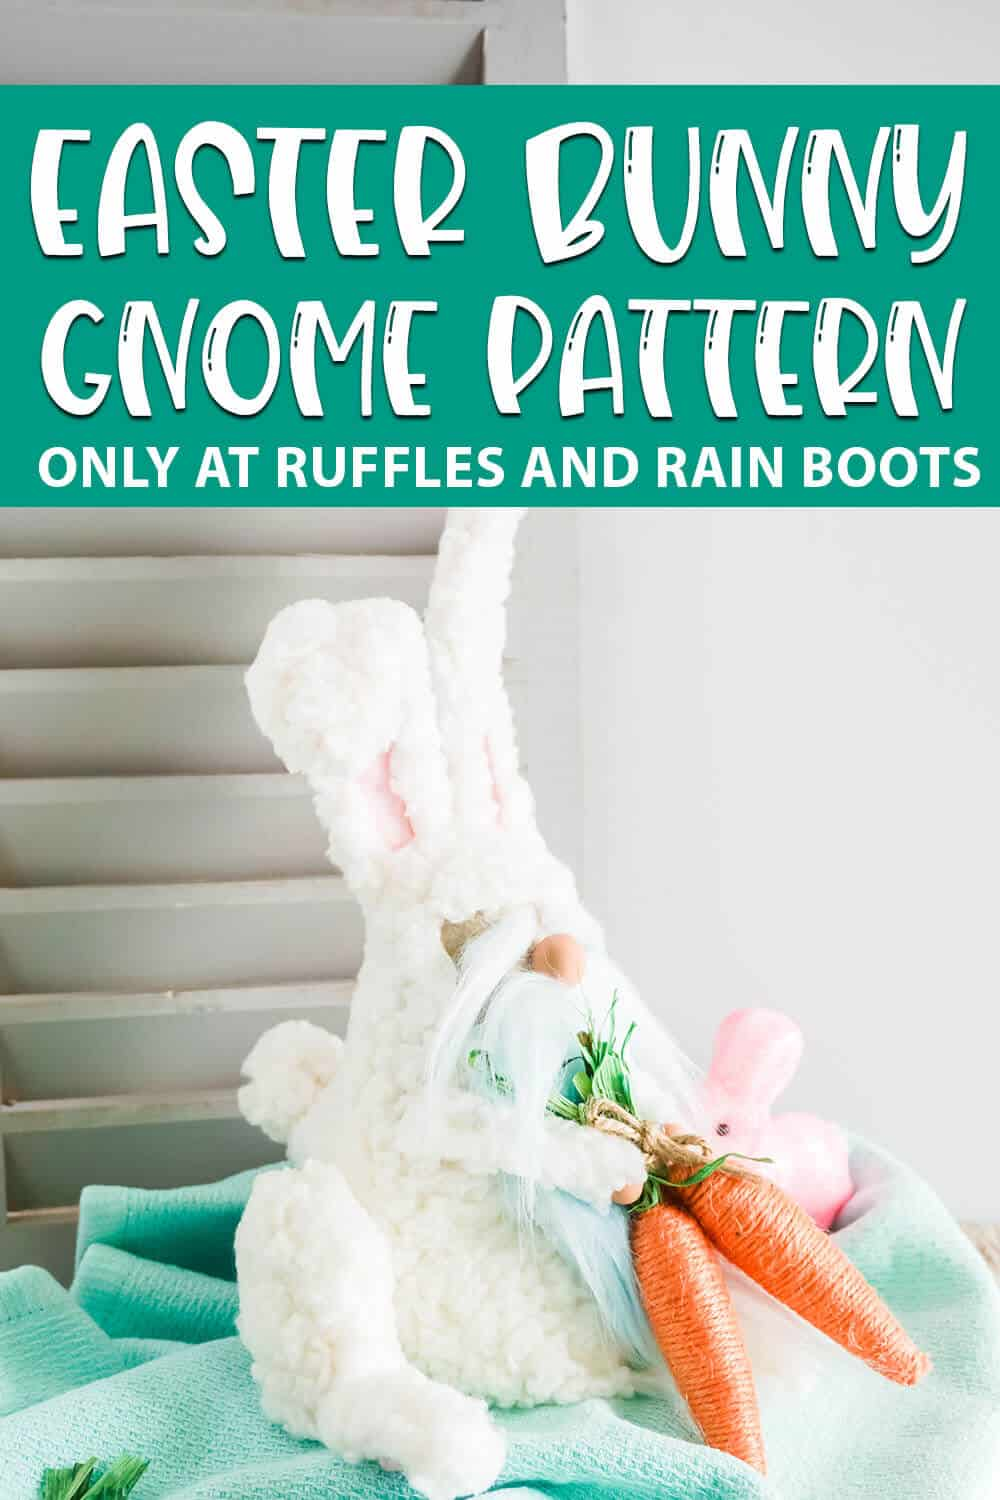 adorable gnome wearing a bunny suit pattern with text which reads Easter Bunny Gnome Pattern